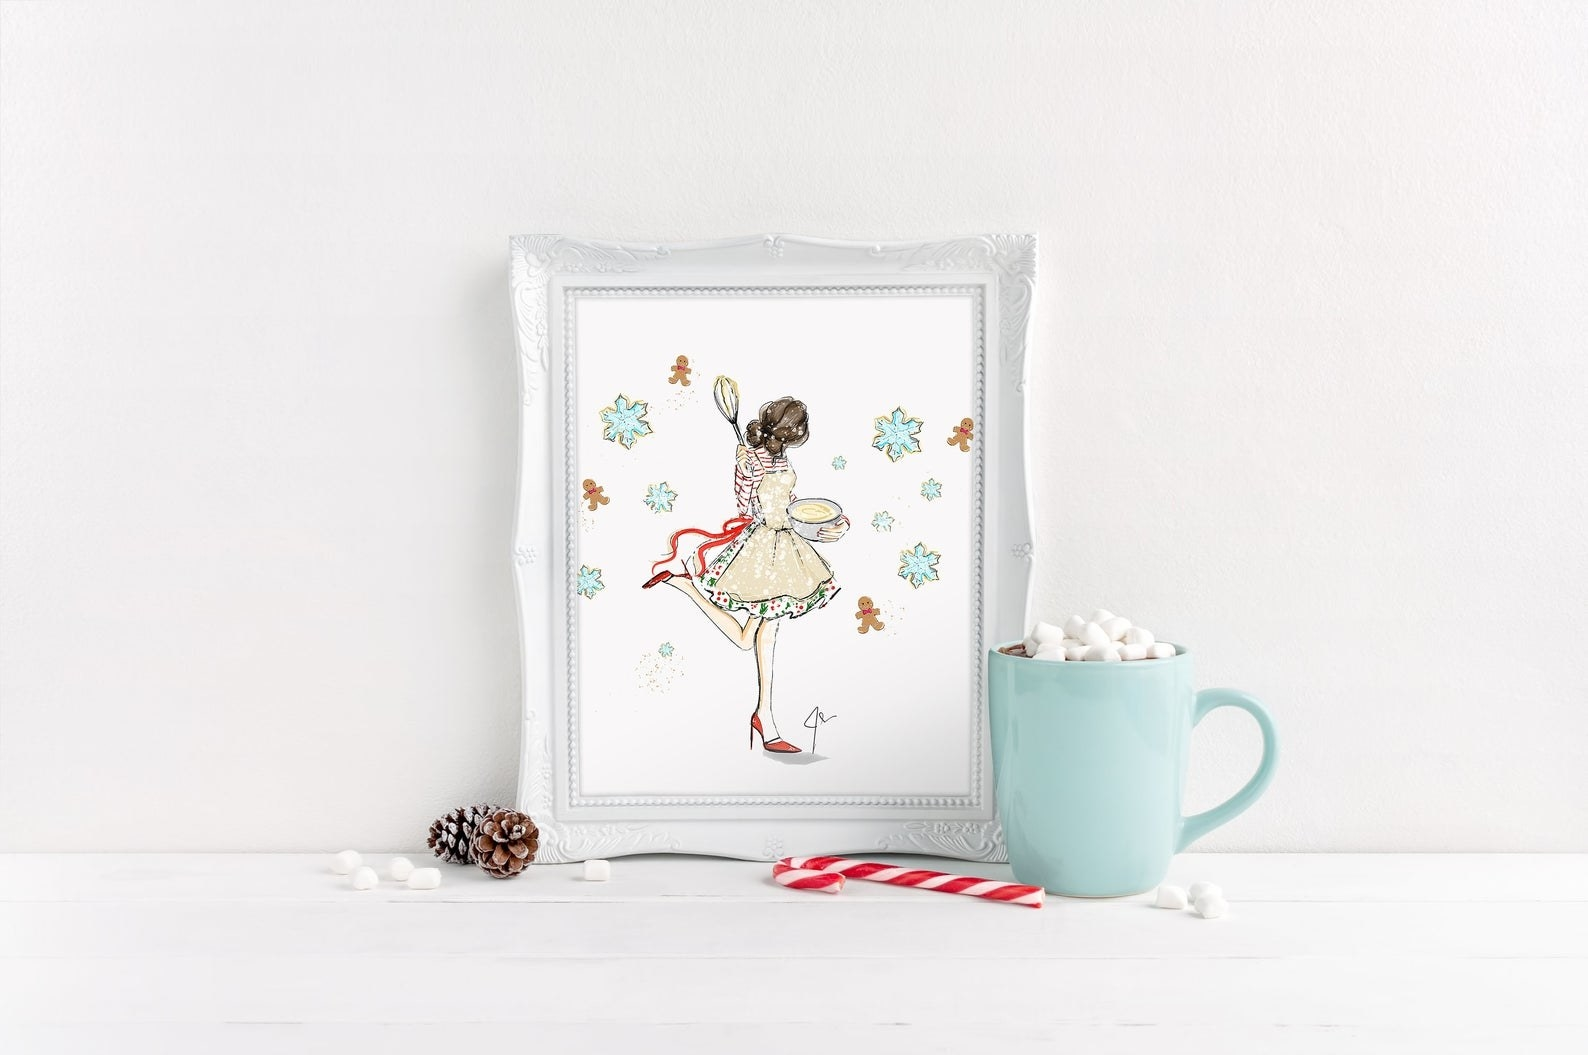 A framed print of a baked holding a bowl of cookie dough and a whisk